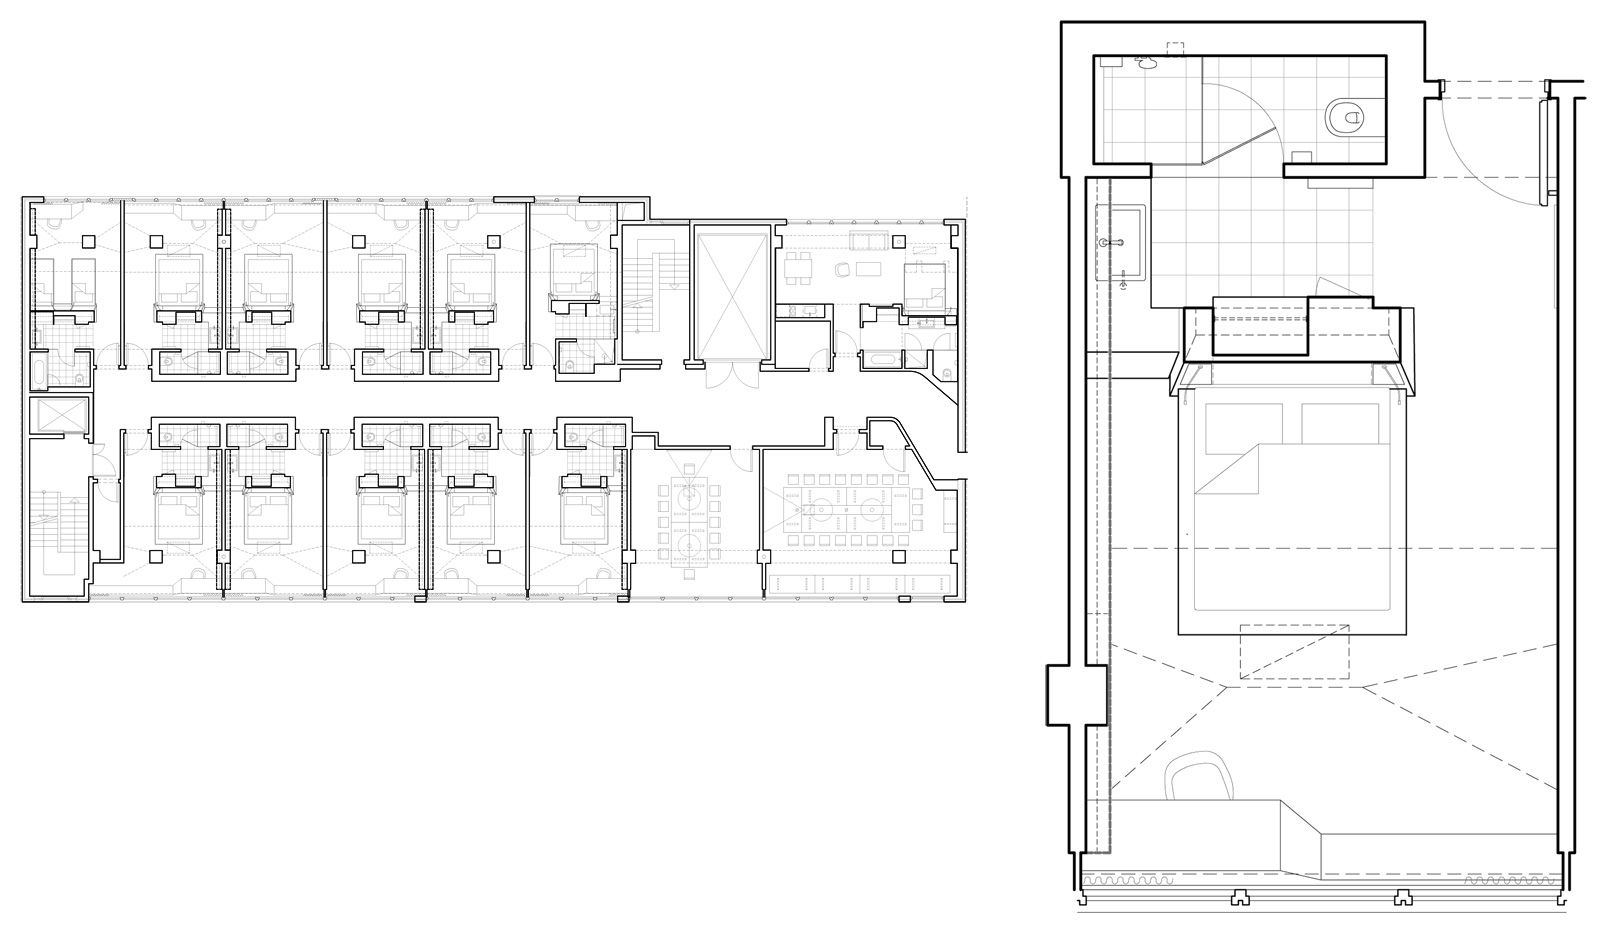 Hotel room layout dimensions images for Hotel design layout